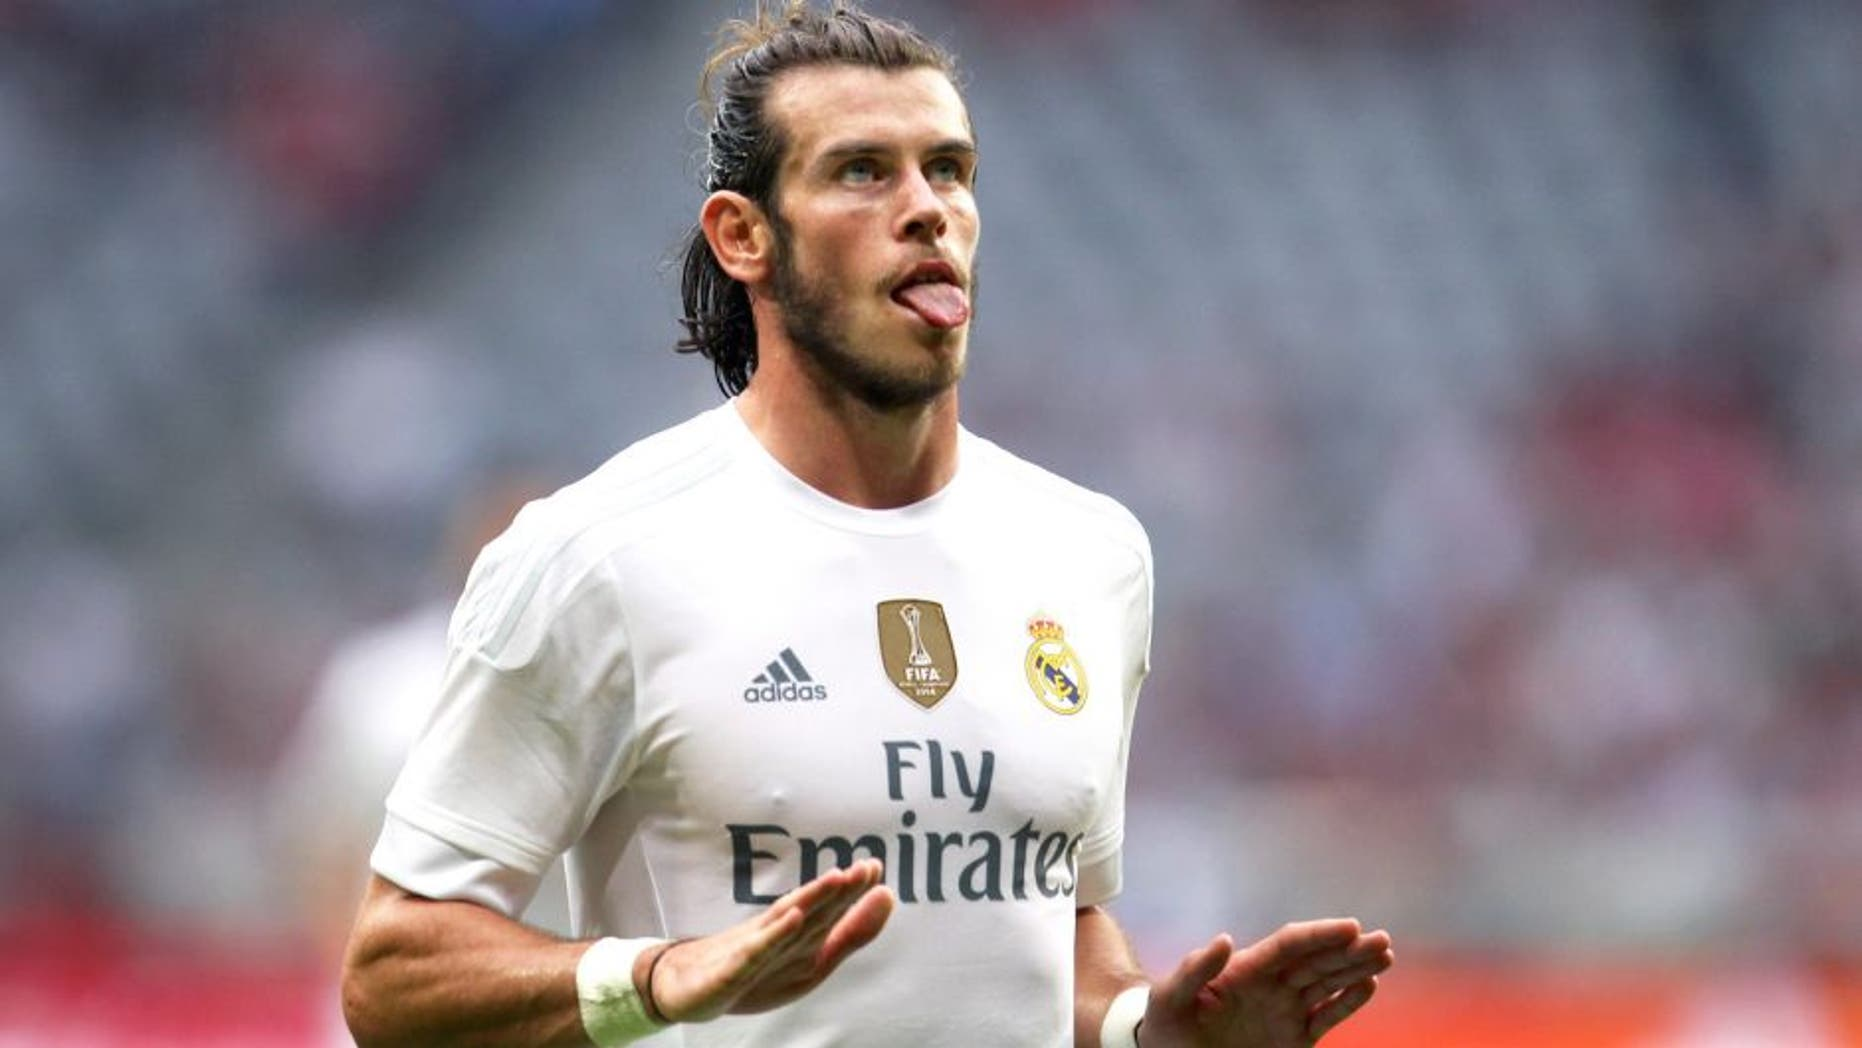 MUNICH, GERMANY - AUGUST 04: Gareth Bale of Real Madrid celebrates his goal during the semi-final match of the Audi Cup 2015 at Allianz Arena on August 4, 2015 in Munich, Germany. (Photo by Alexandra Beier/Bongarts/Getty Images)